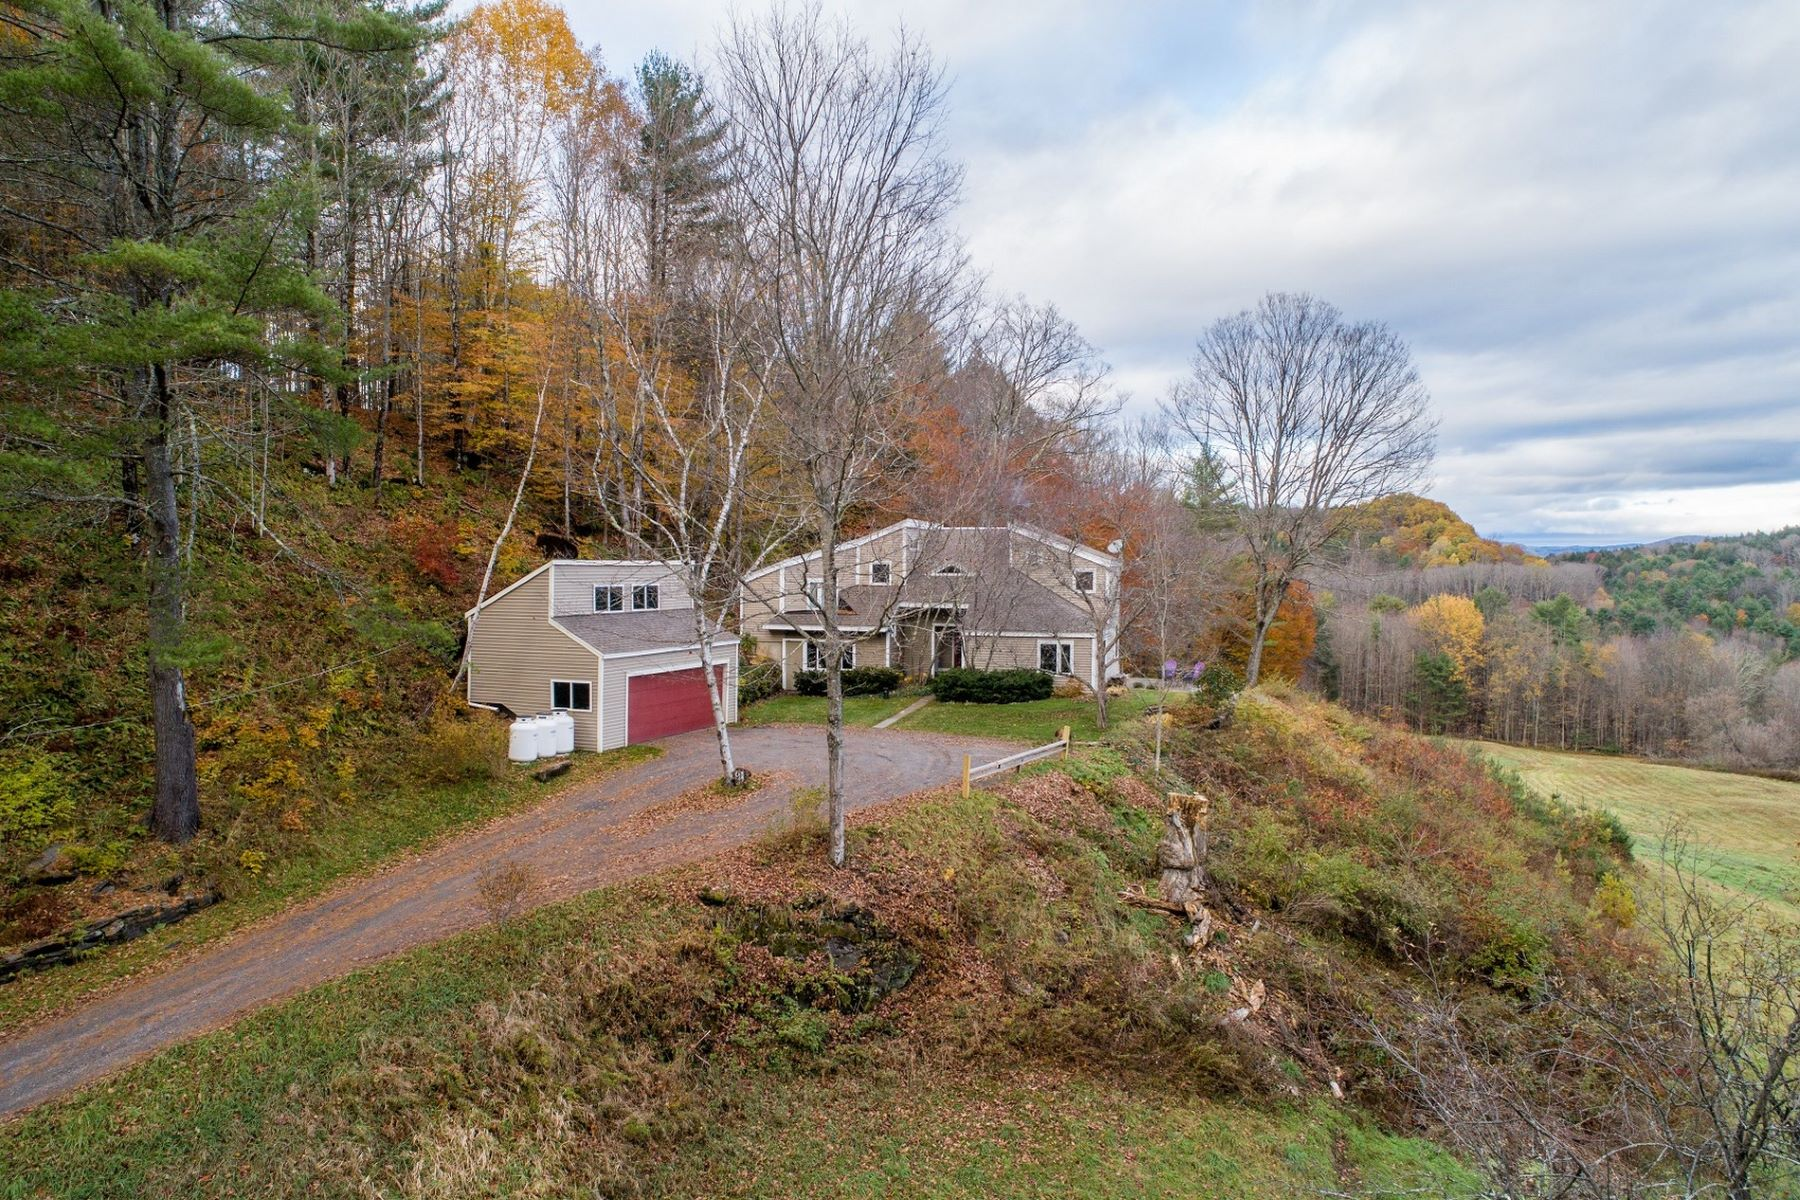 Single Family Home for Sale at 219 Russell Road, Tunbridge 219 Russell Rd Tunbridge, Vermont 05077 United States